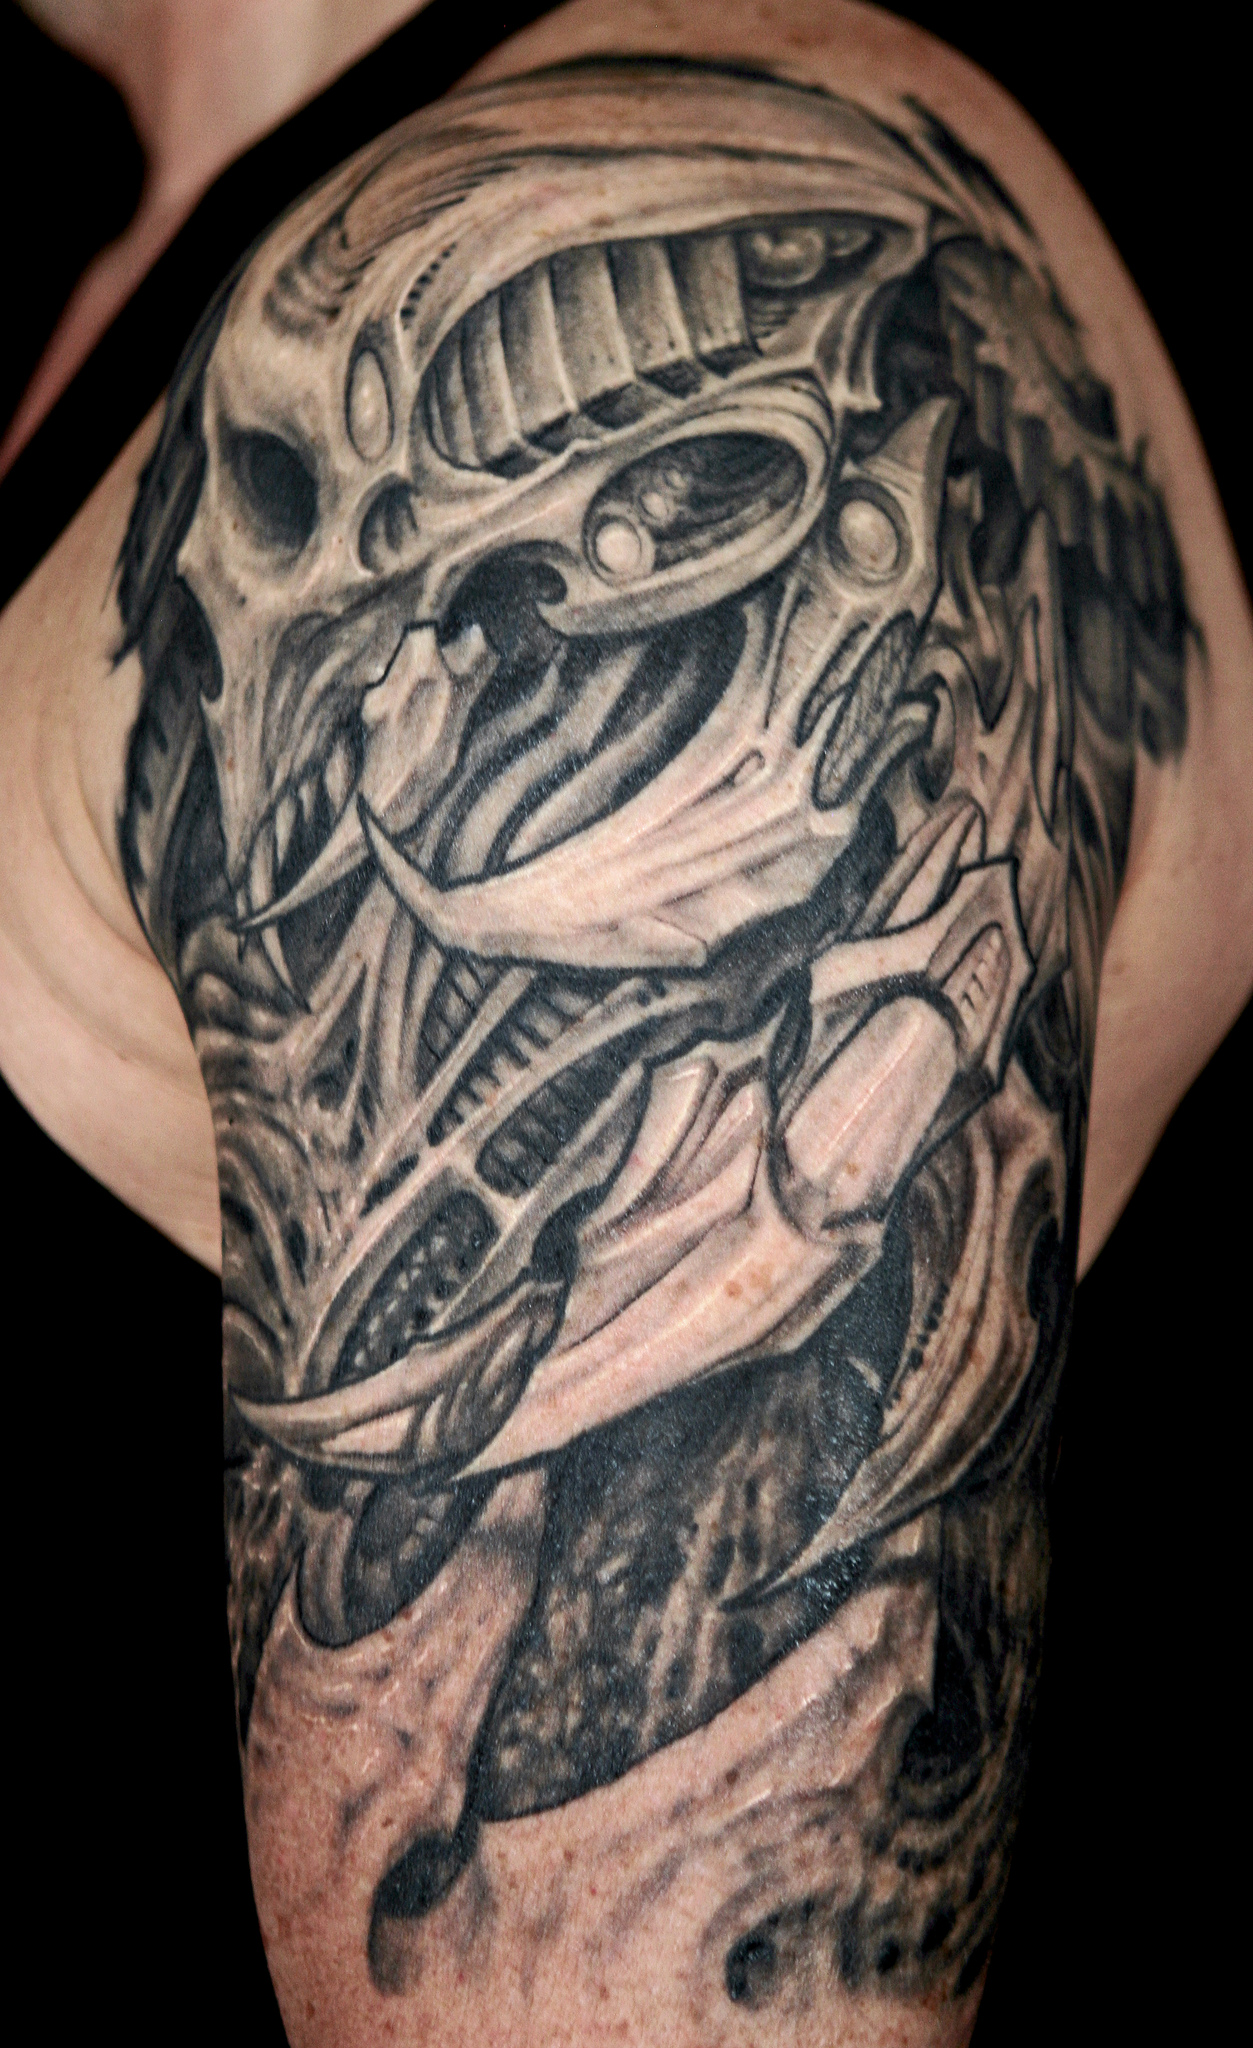 25 Amazing Biomechanical Tattoos Design Ideas And Designs